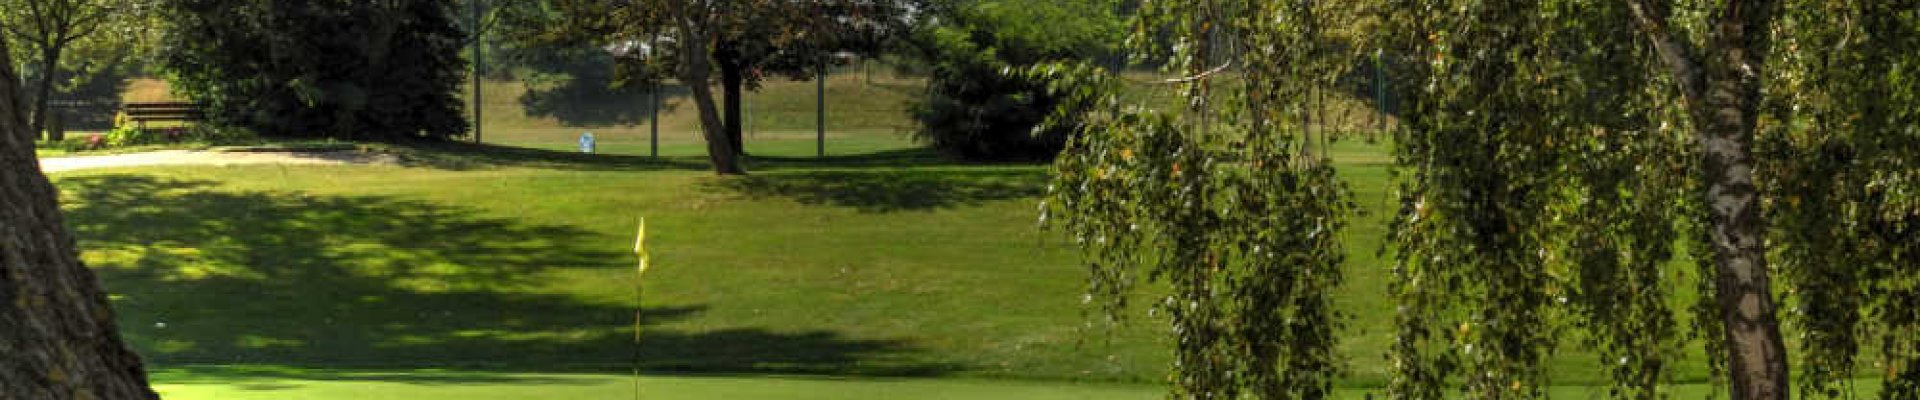 parc-tremblay-champigny-marne-golf.jpg